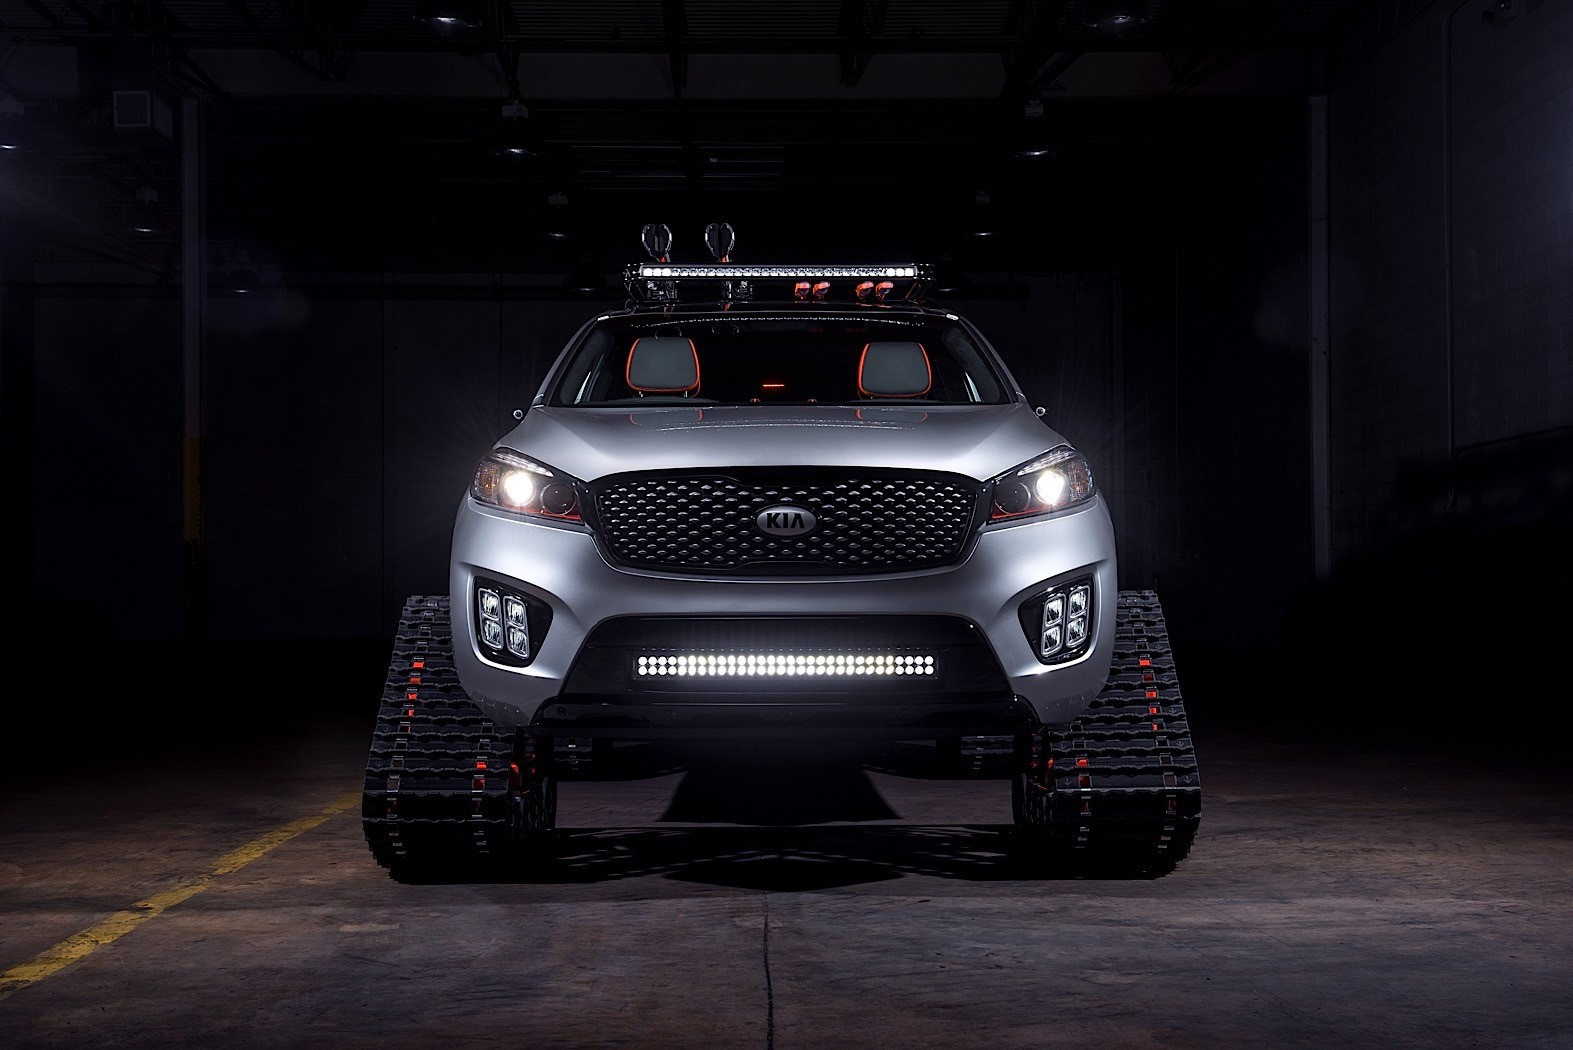 New Kia Sorento Interior Design Revealed In First Teaser